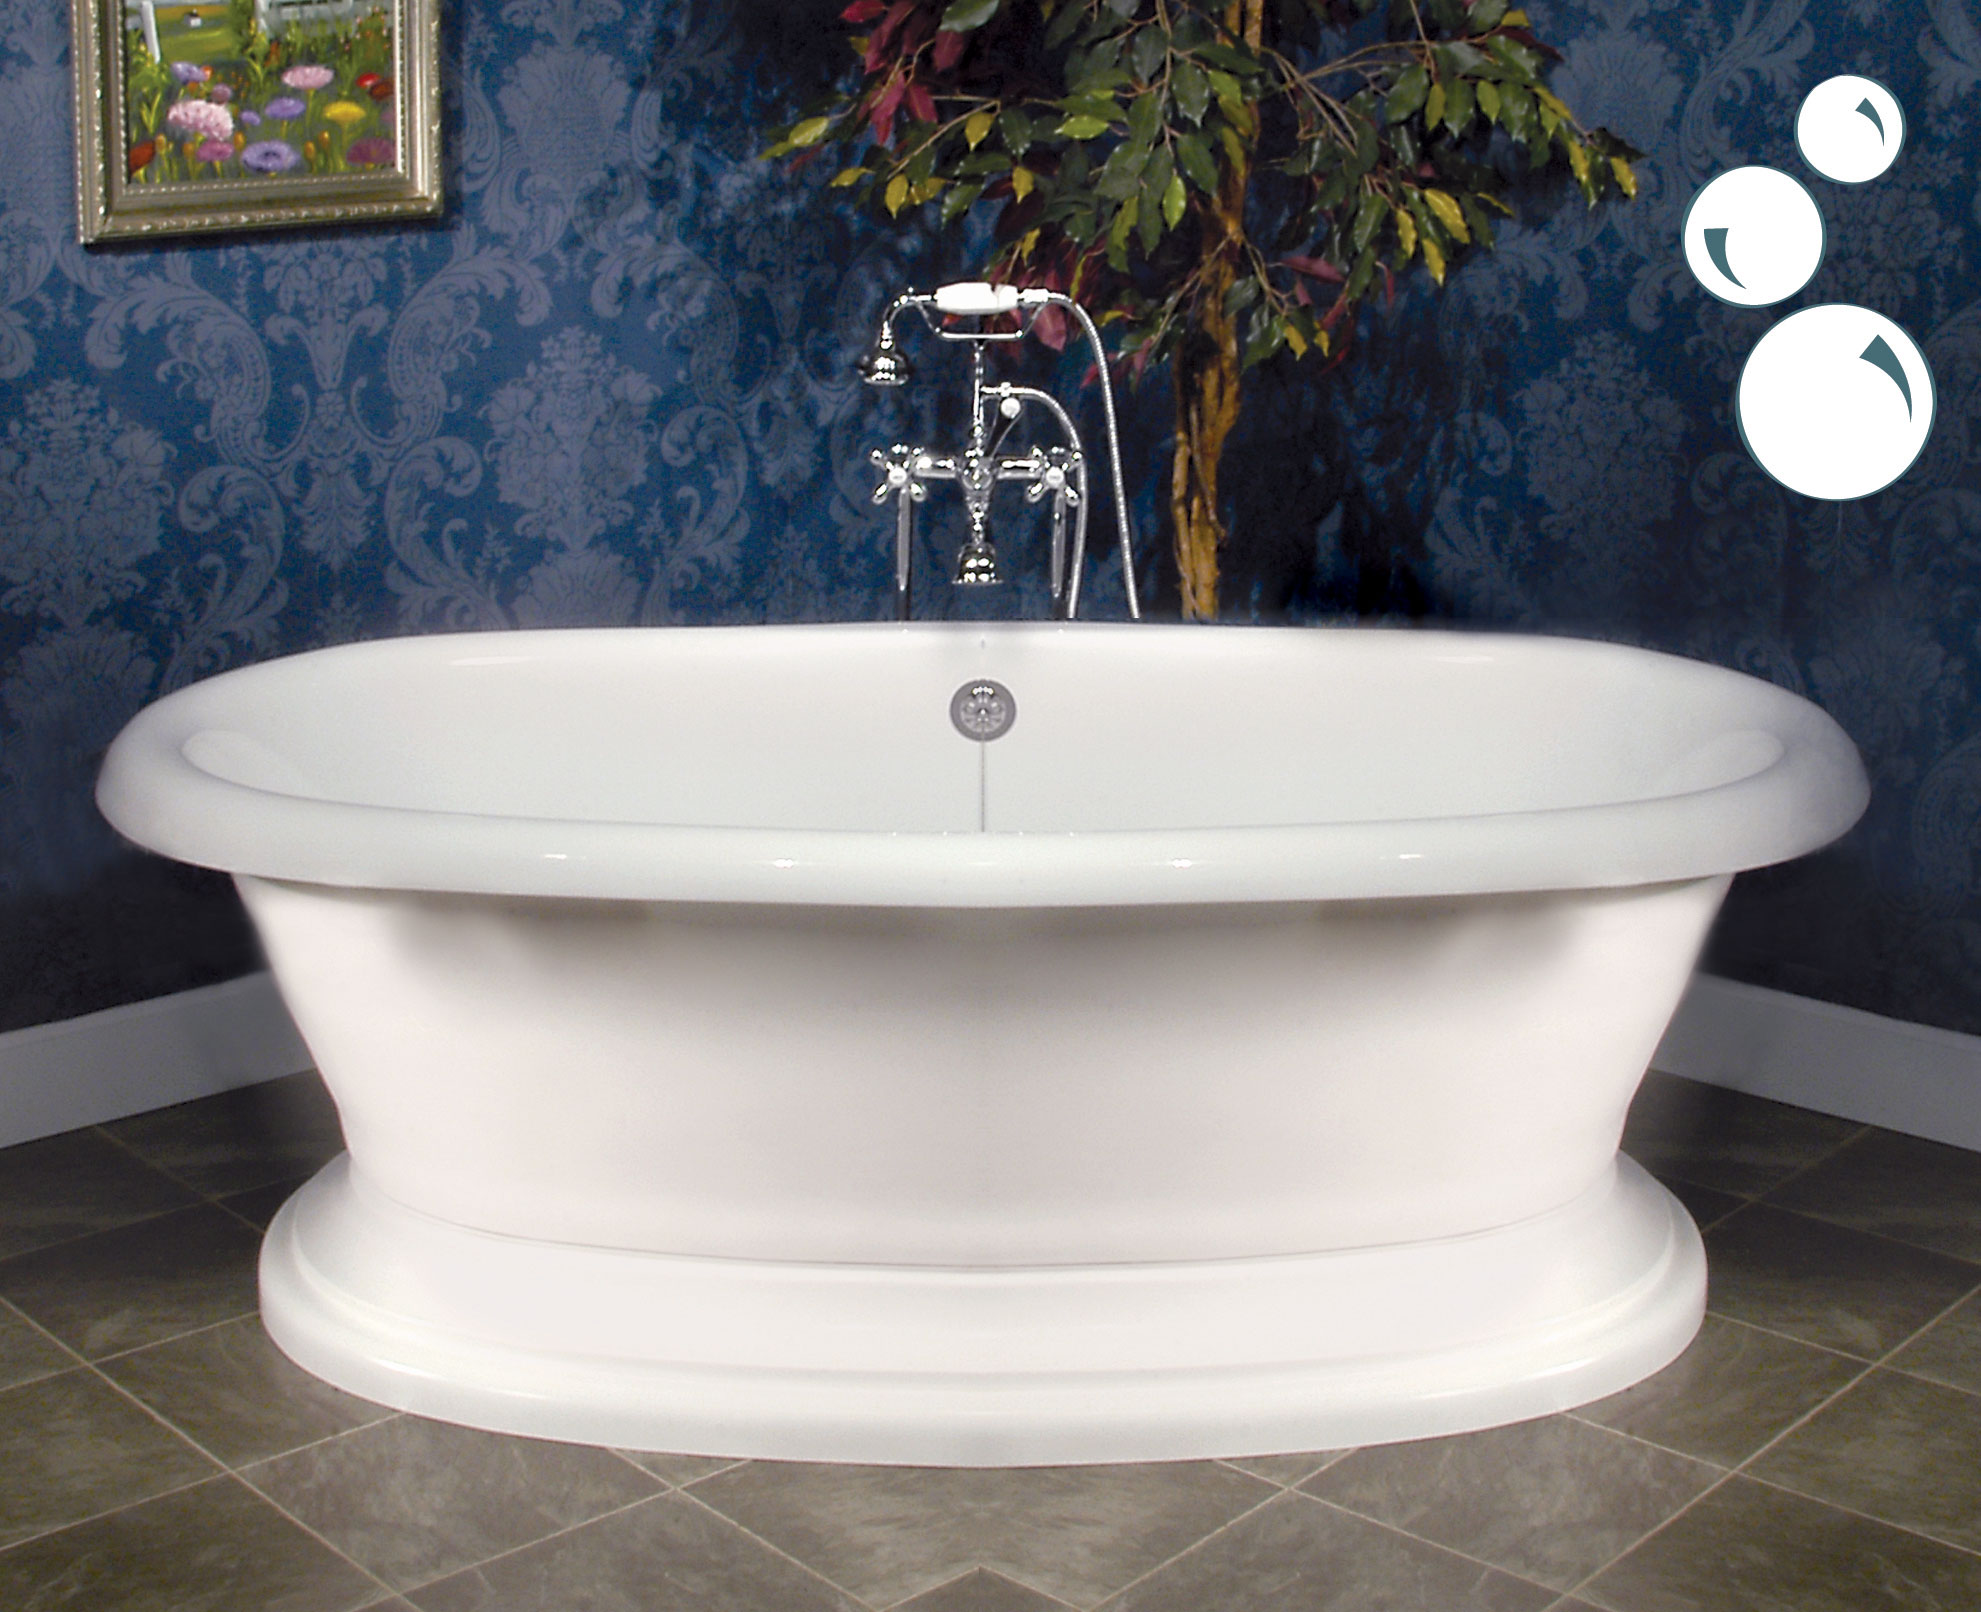 Charmant New Line Of Air Bath Tubs From Signature Hardware